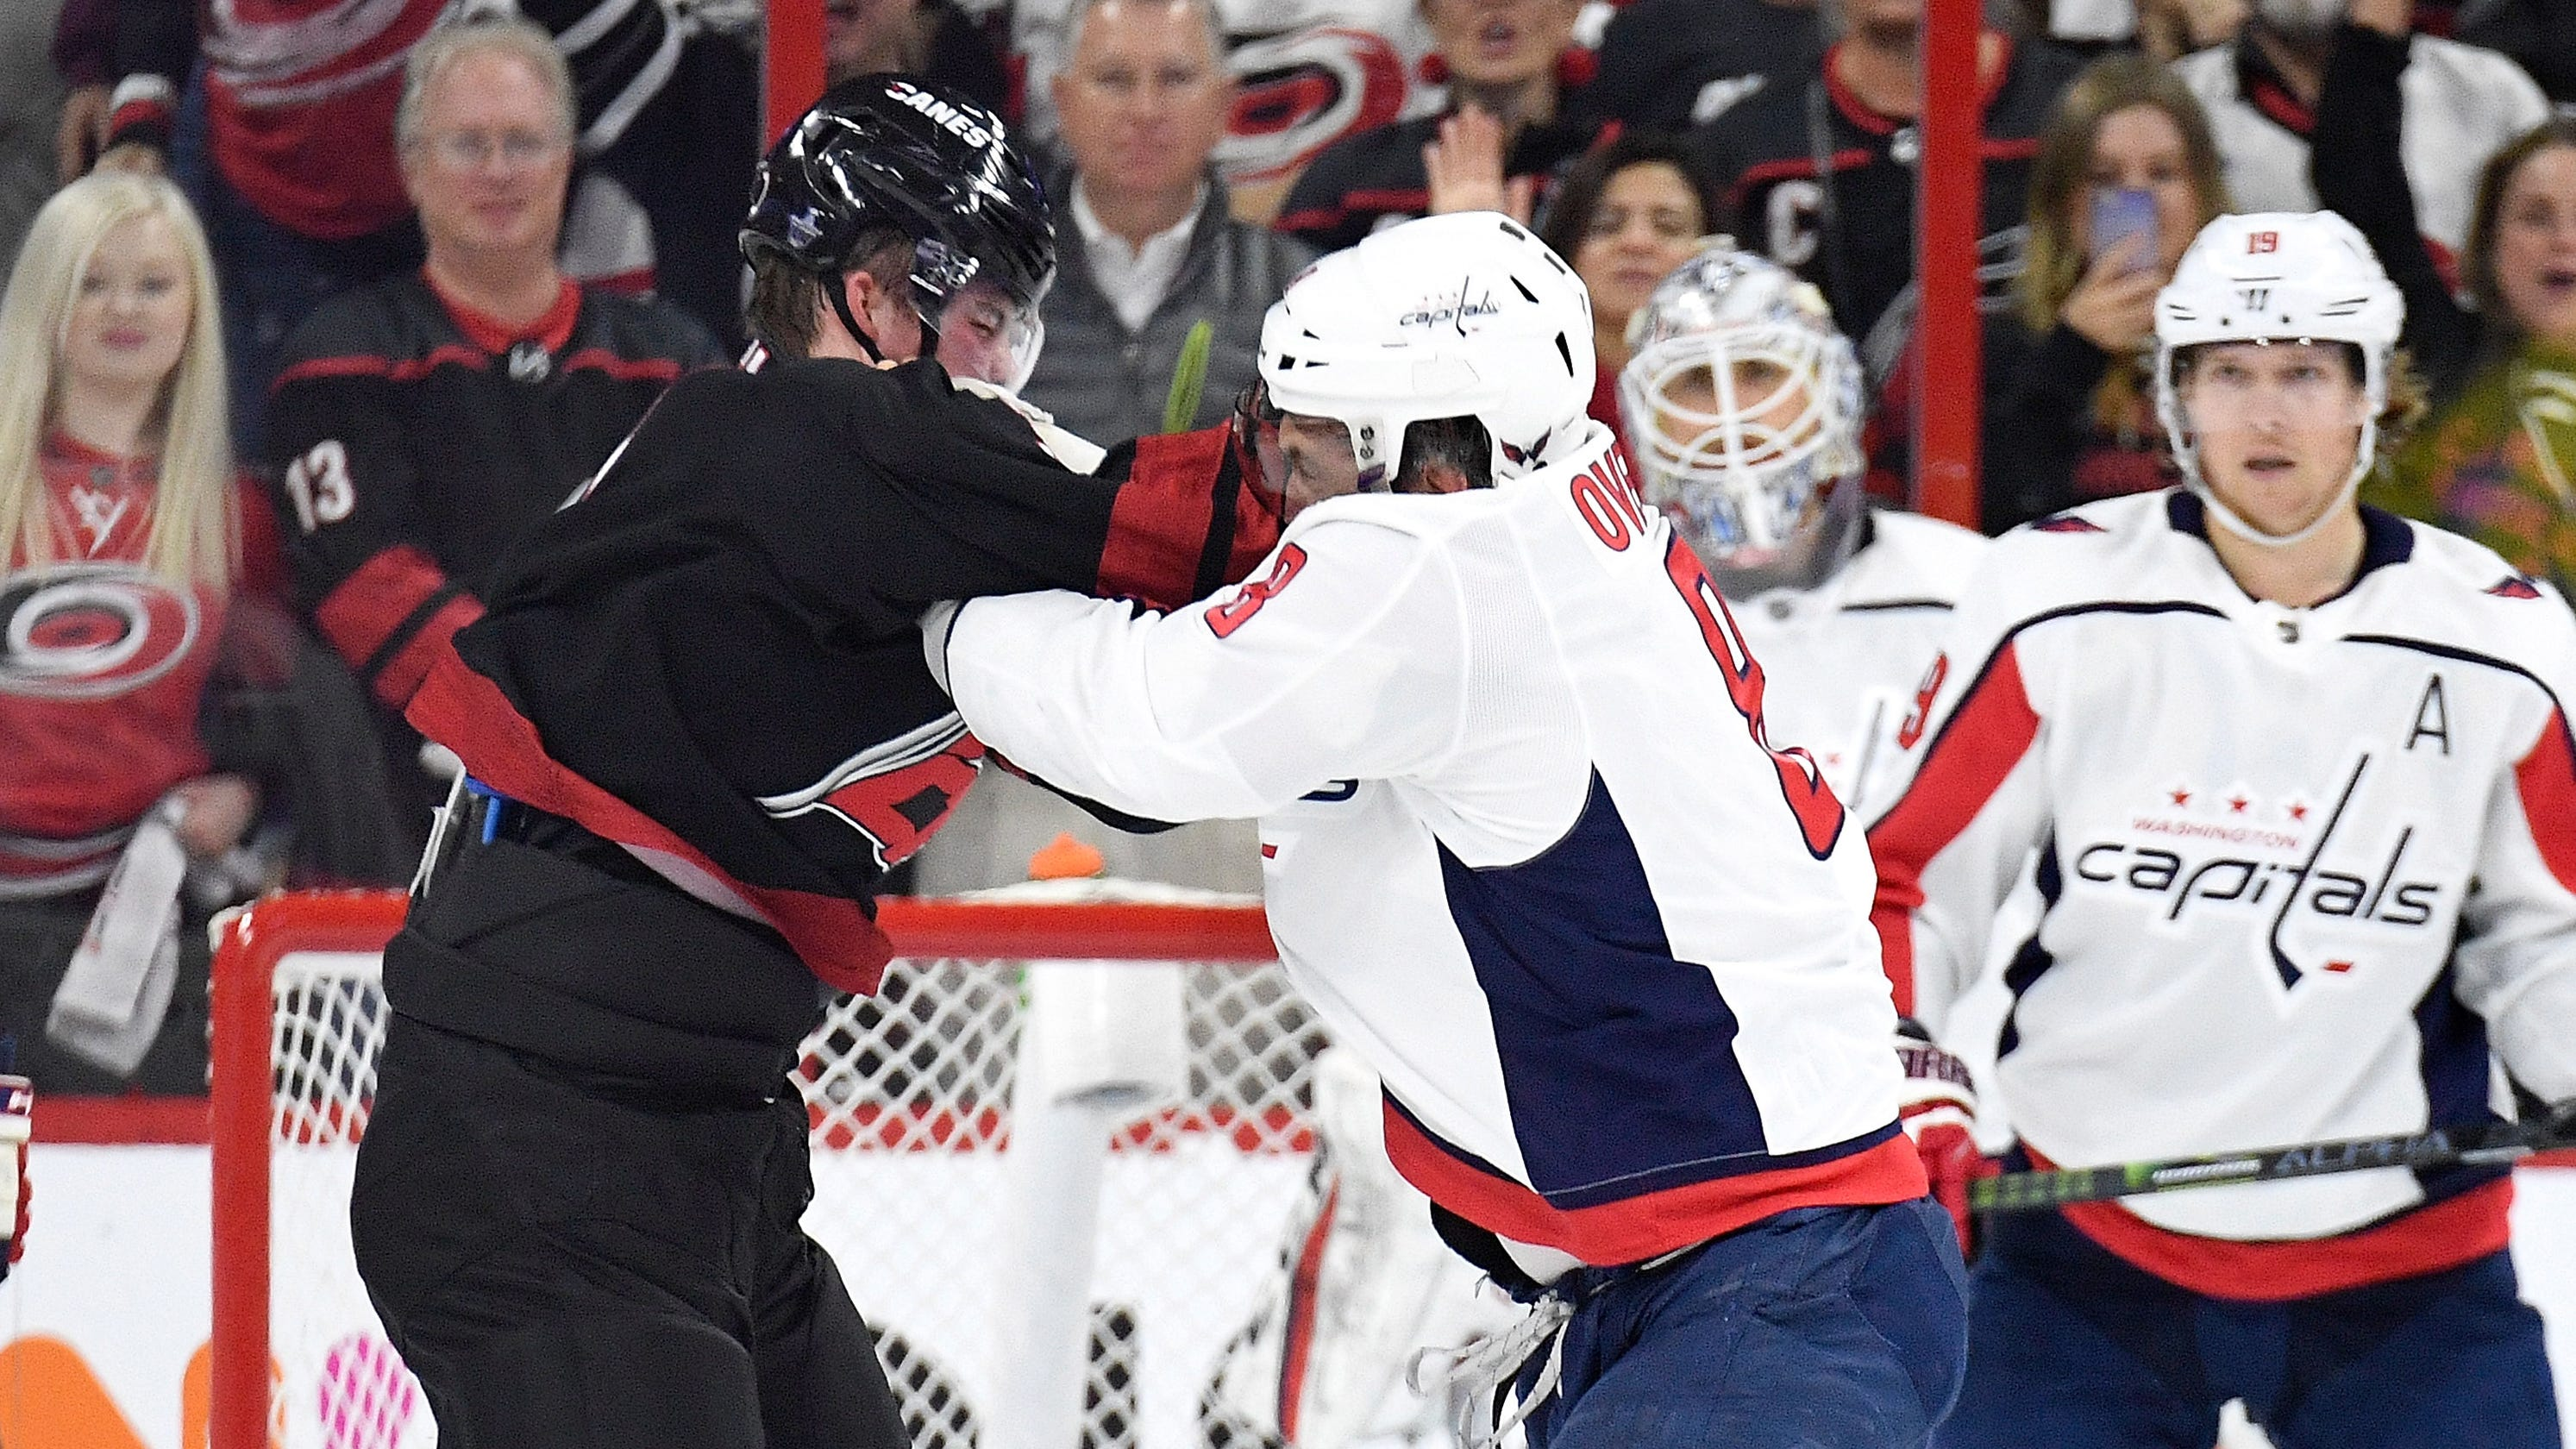 7c49c0f80da Alex Ovechkin knocks out Andrei Svechnikov in fight during  Capitals-Hurricanes Game 3